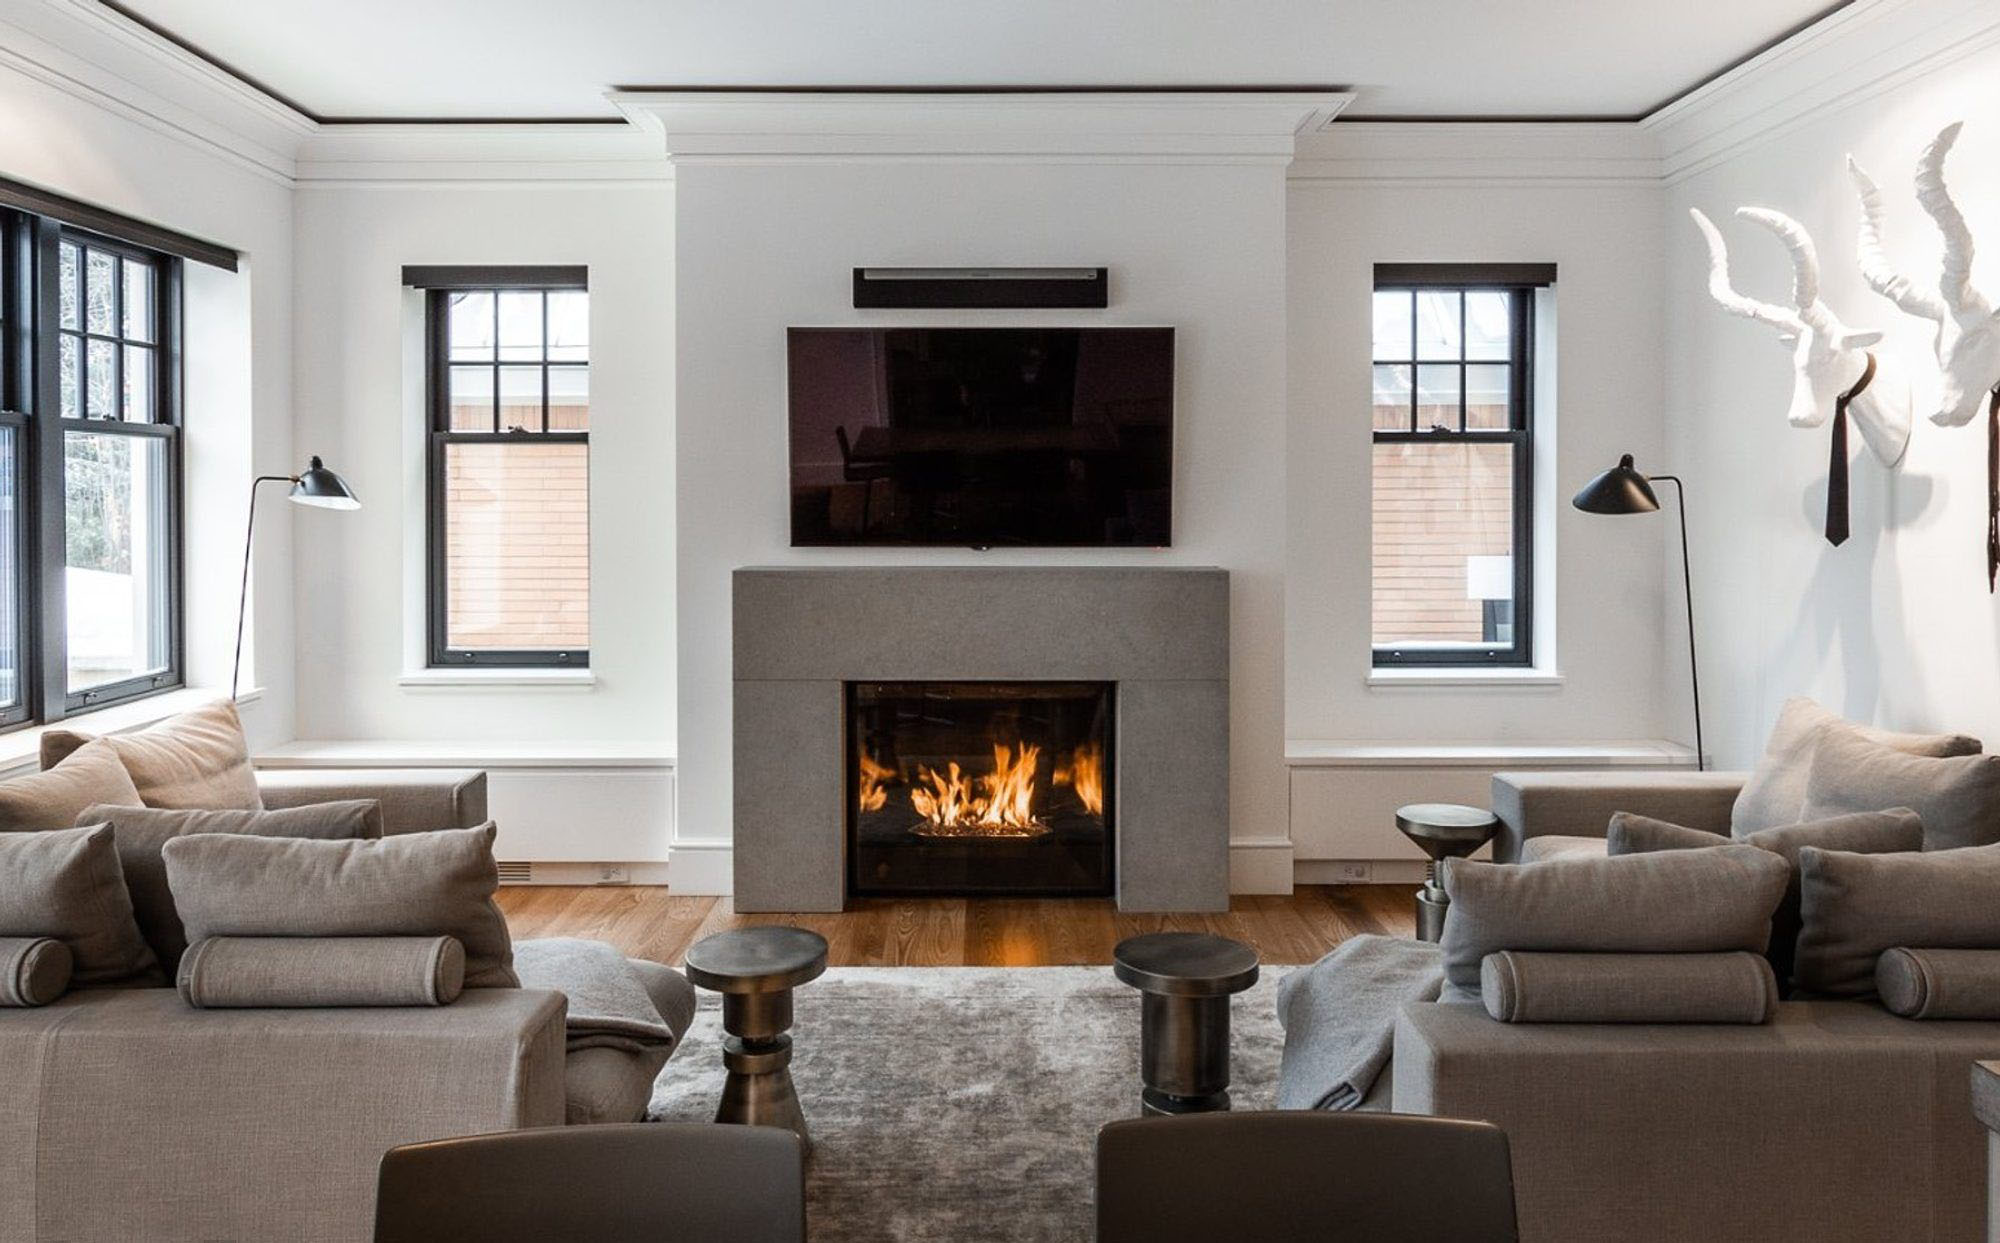 Gas burning fireplace with a sleek modern surround made three from cast cement panels painted gray.